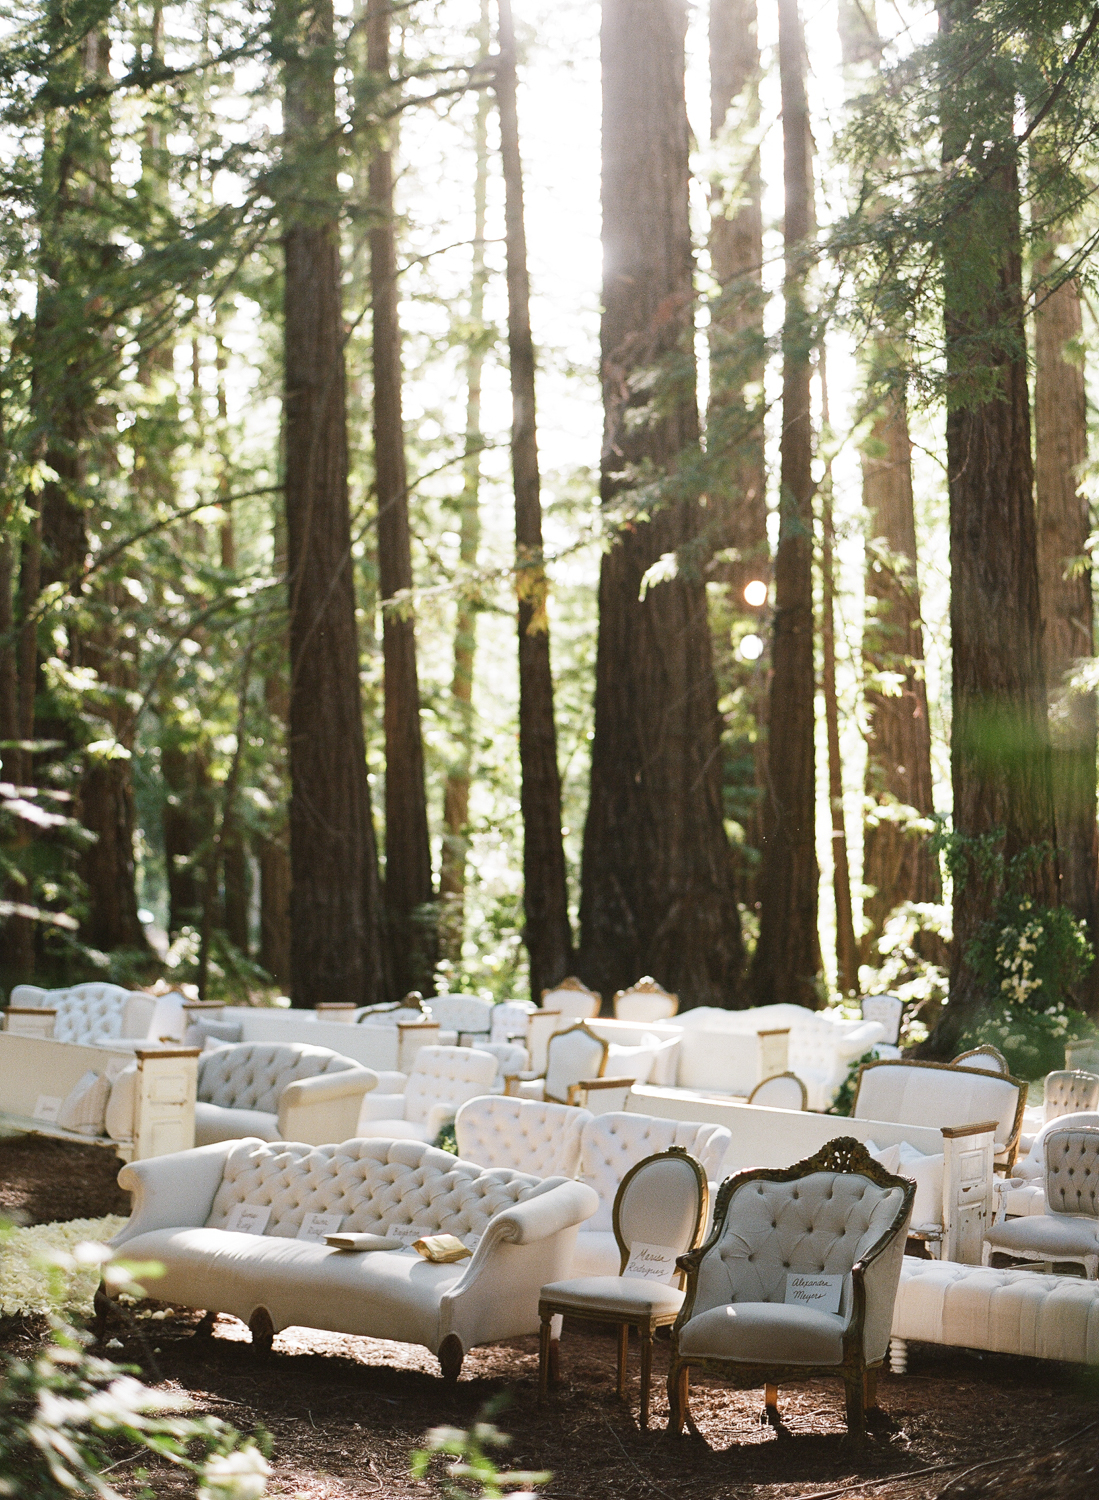 Vintage found furniture arranged for a ceremony among the redwoods in Santa Lucia Preserve; Sylvie Gil Photography